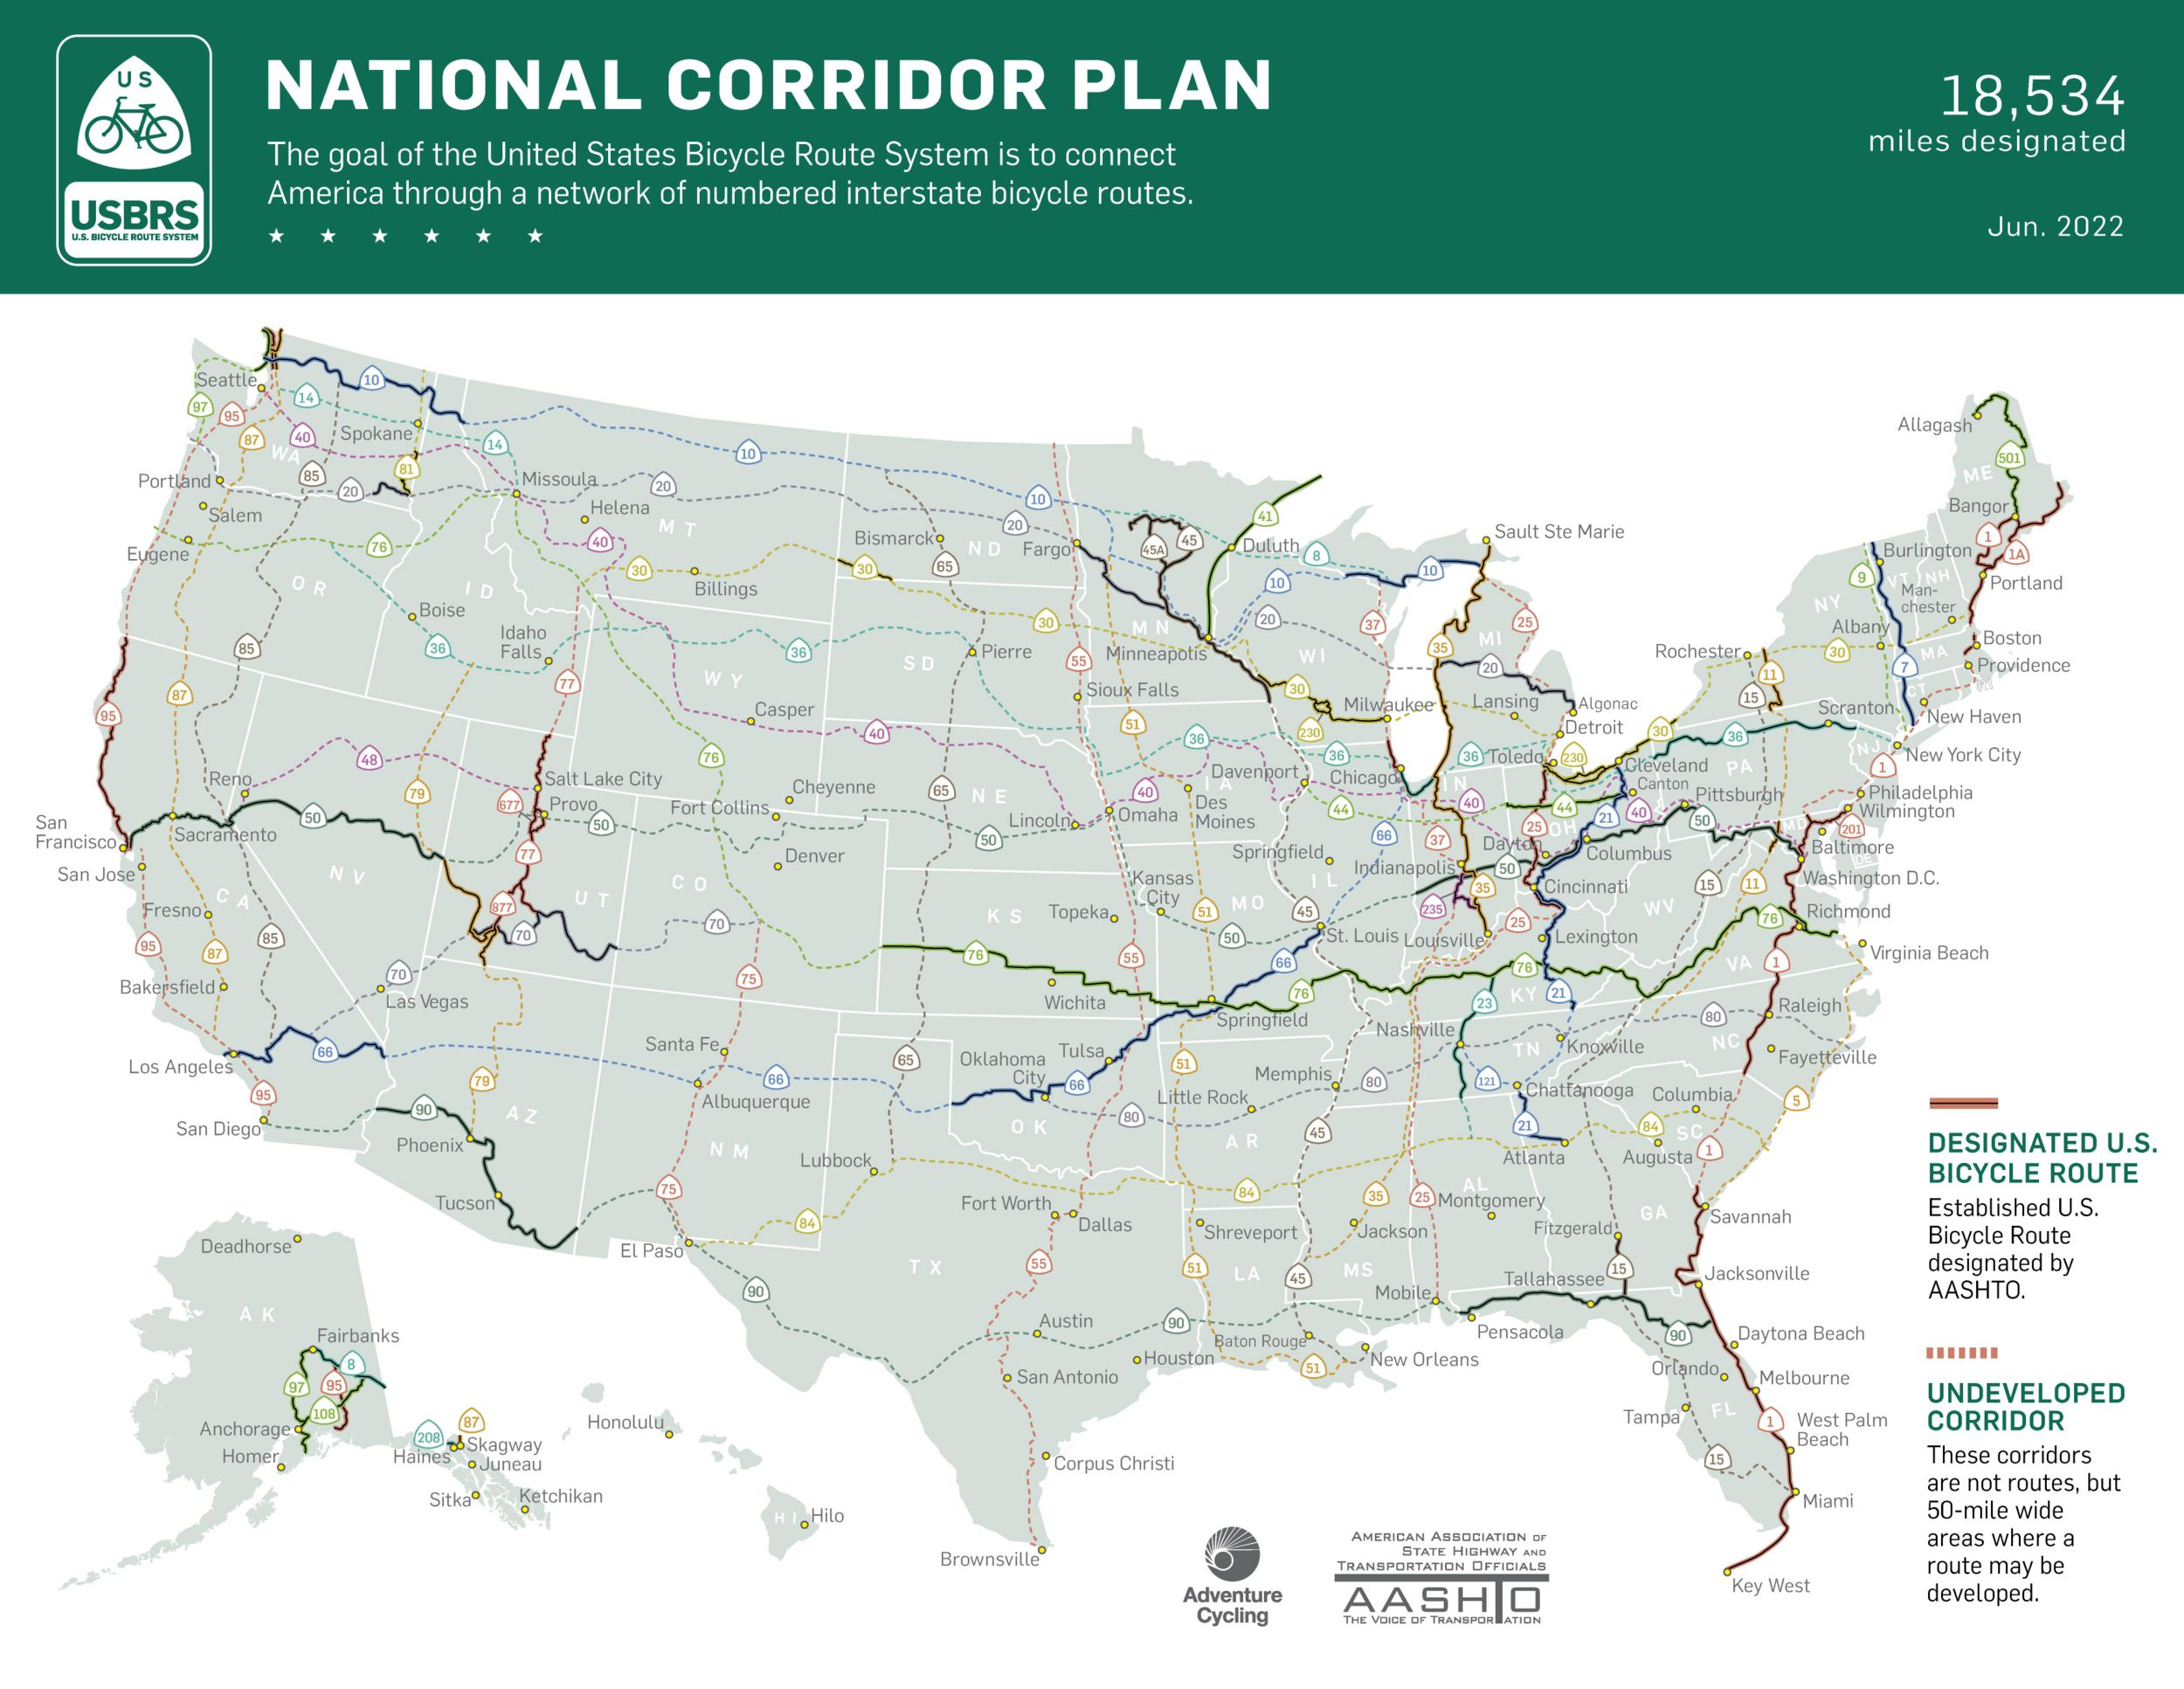 National Corridor Plan US Bicycle Route System Adventure - Us bike route map